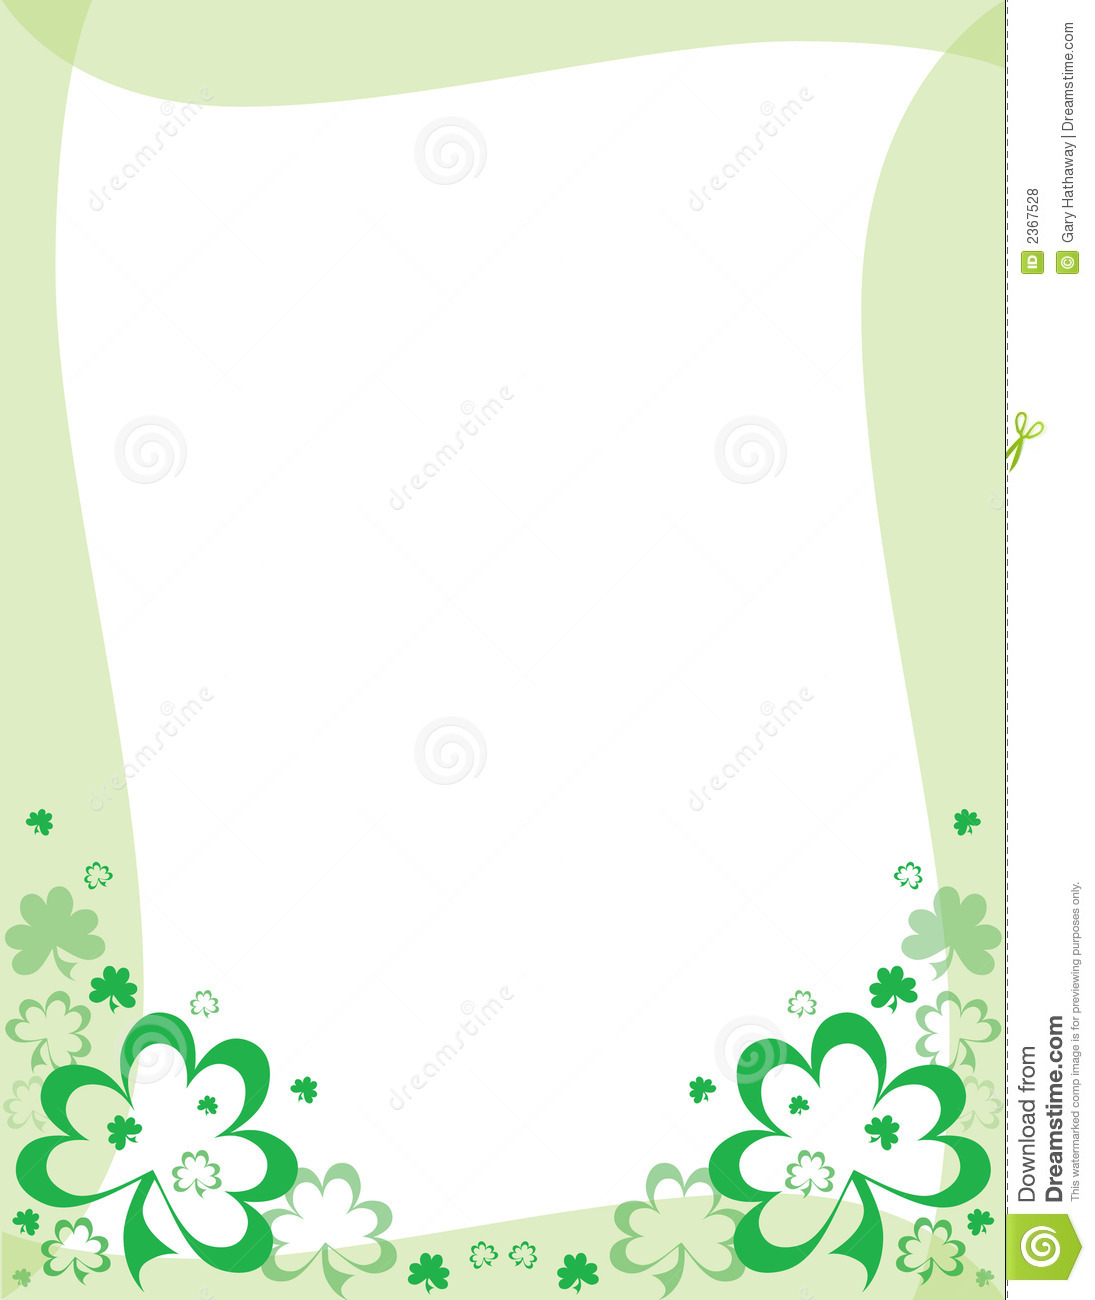 An illustrated St. Patrick's Day frame featuring green shamrocks and ...